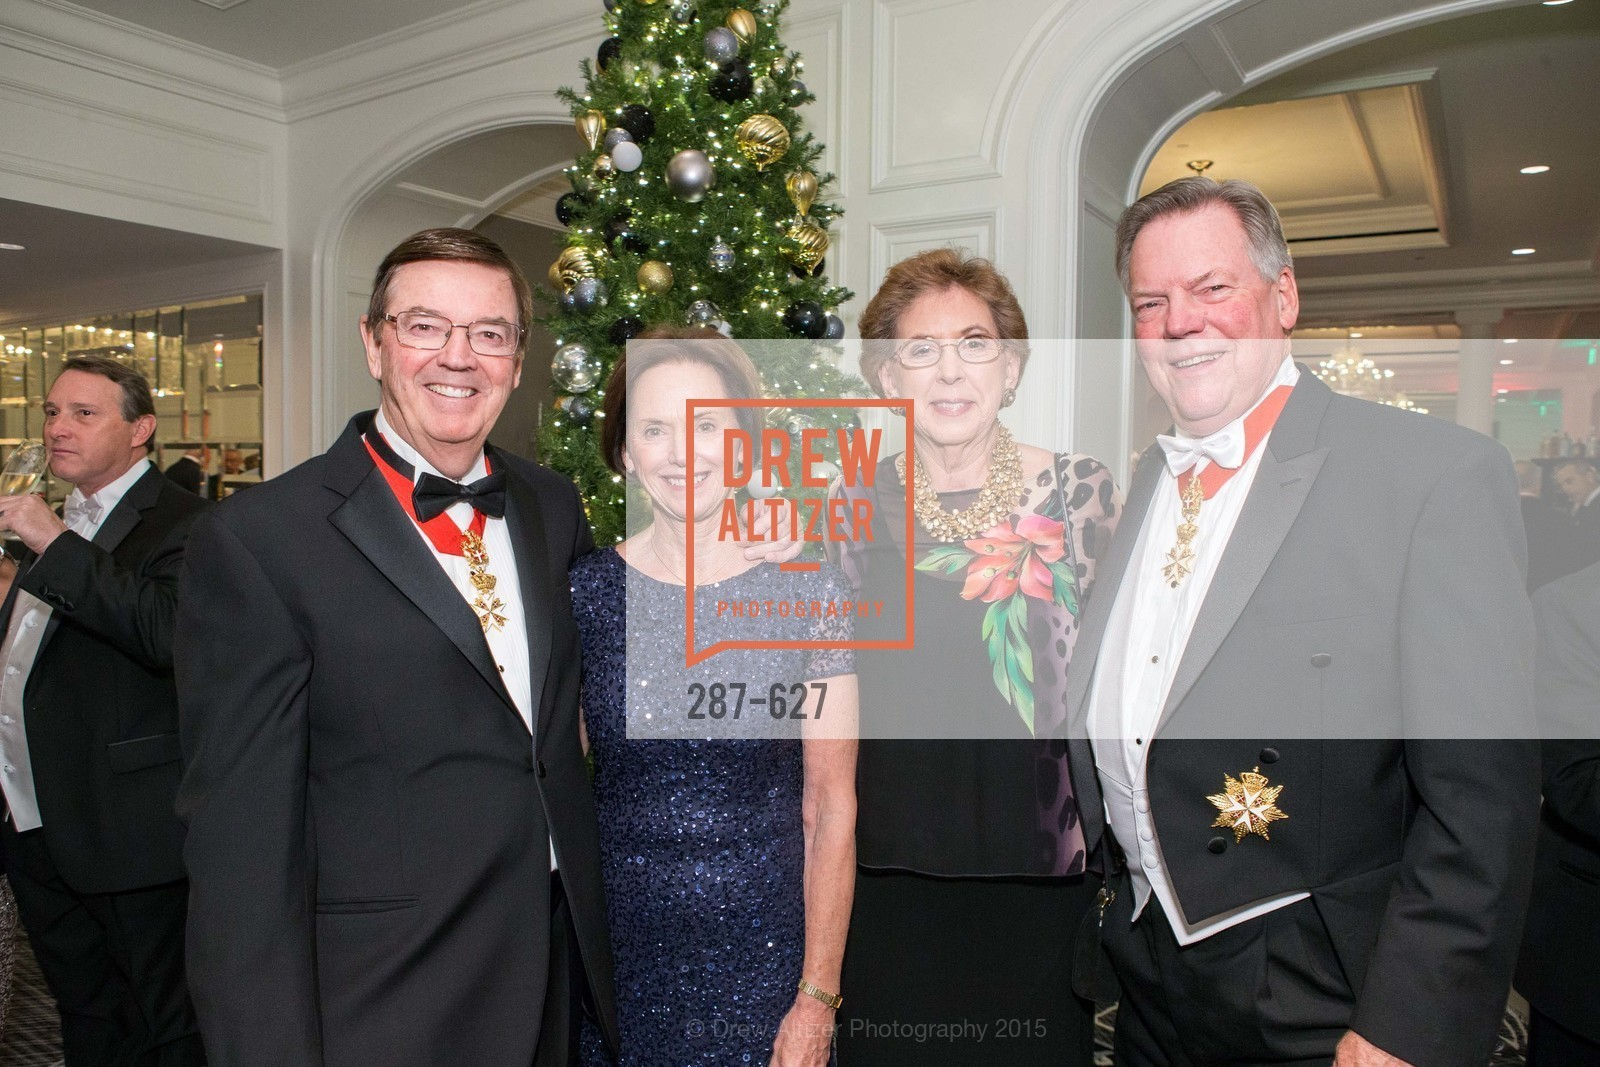 Bill Murphy, Brenda Murphy, Kathy Hull, Bill Gisvold, Sovereign Order Of St John of Jerusalem Knights Hospitaller Gala, Ritz Carlton San Francisco, December 5th, 2015,Drew Altizer, Drew Altizer Photography, full-service agency, private events, San Francisco photographer, photographer california